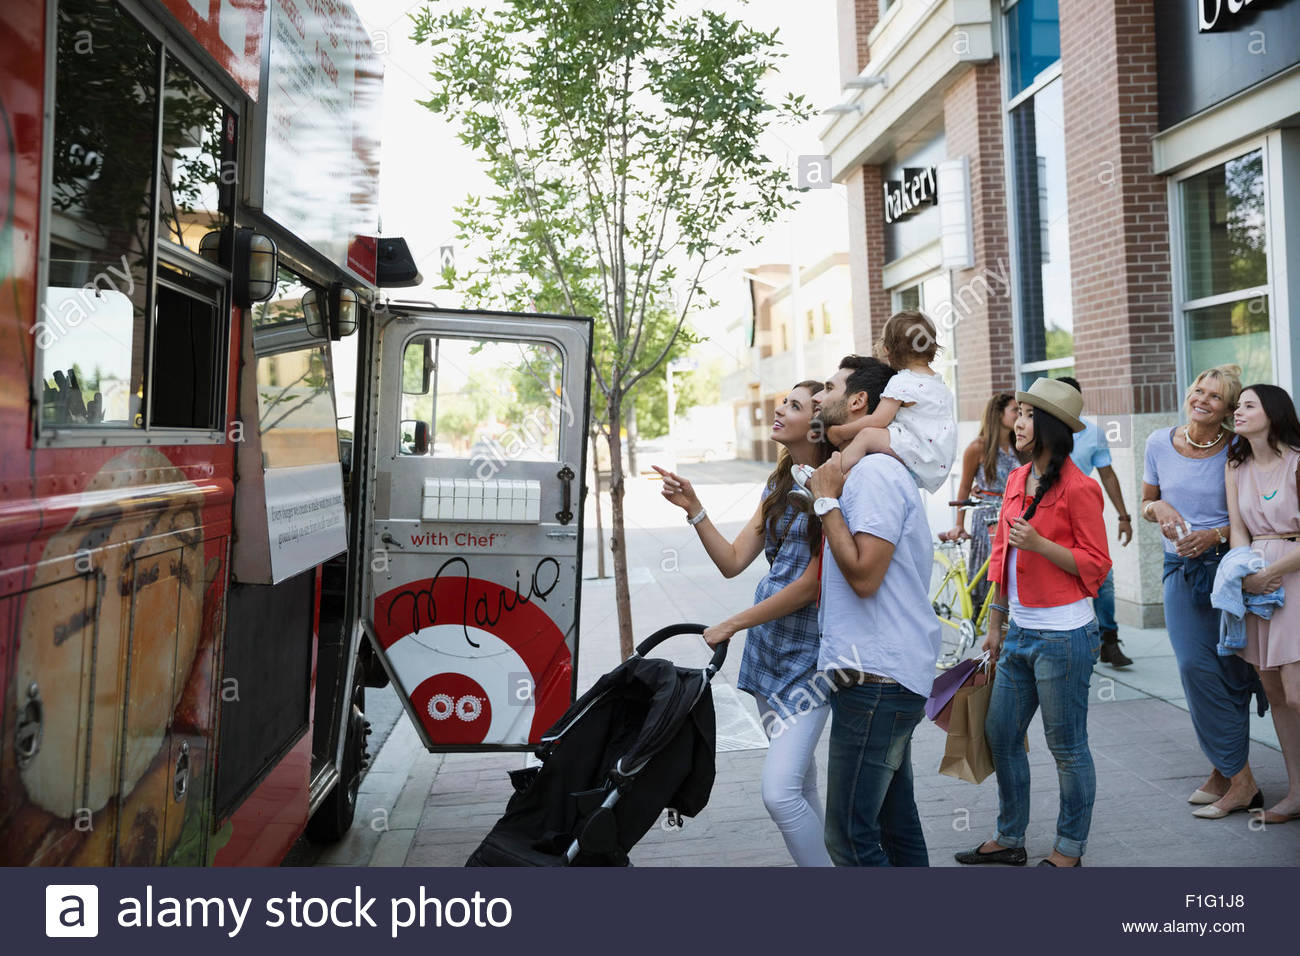 Customers outside food truck on sidewalk Stock Photo